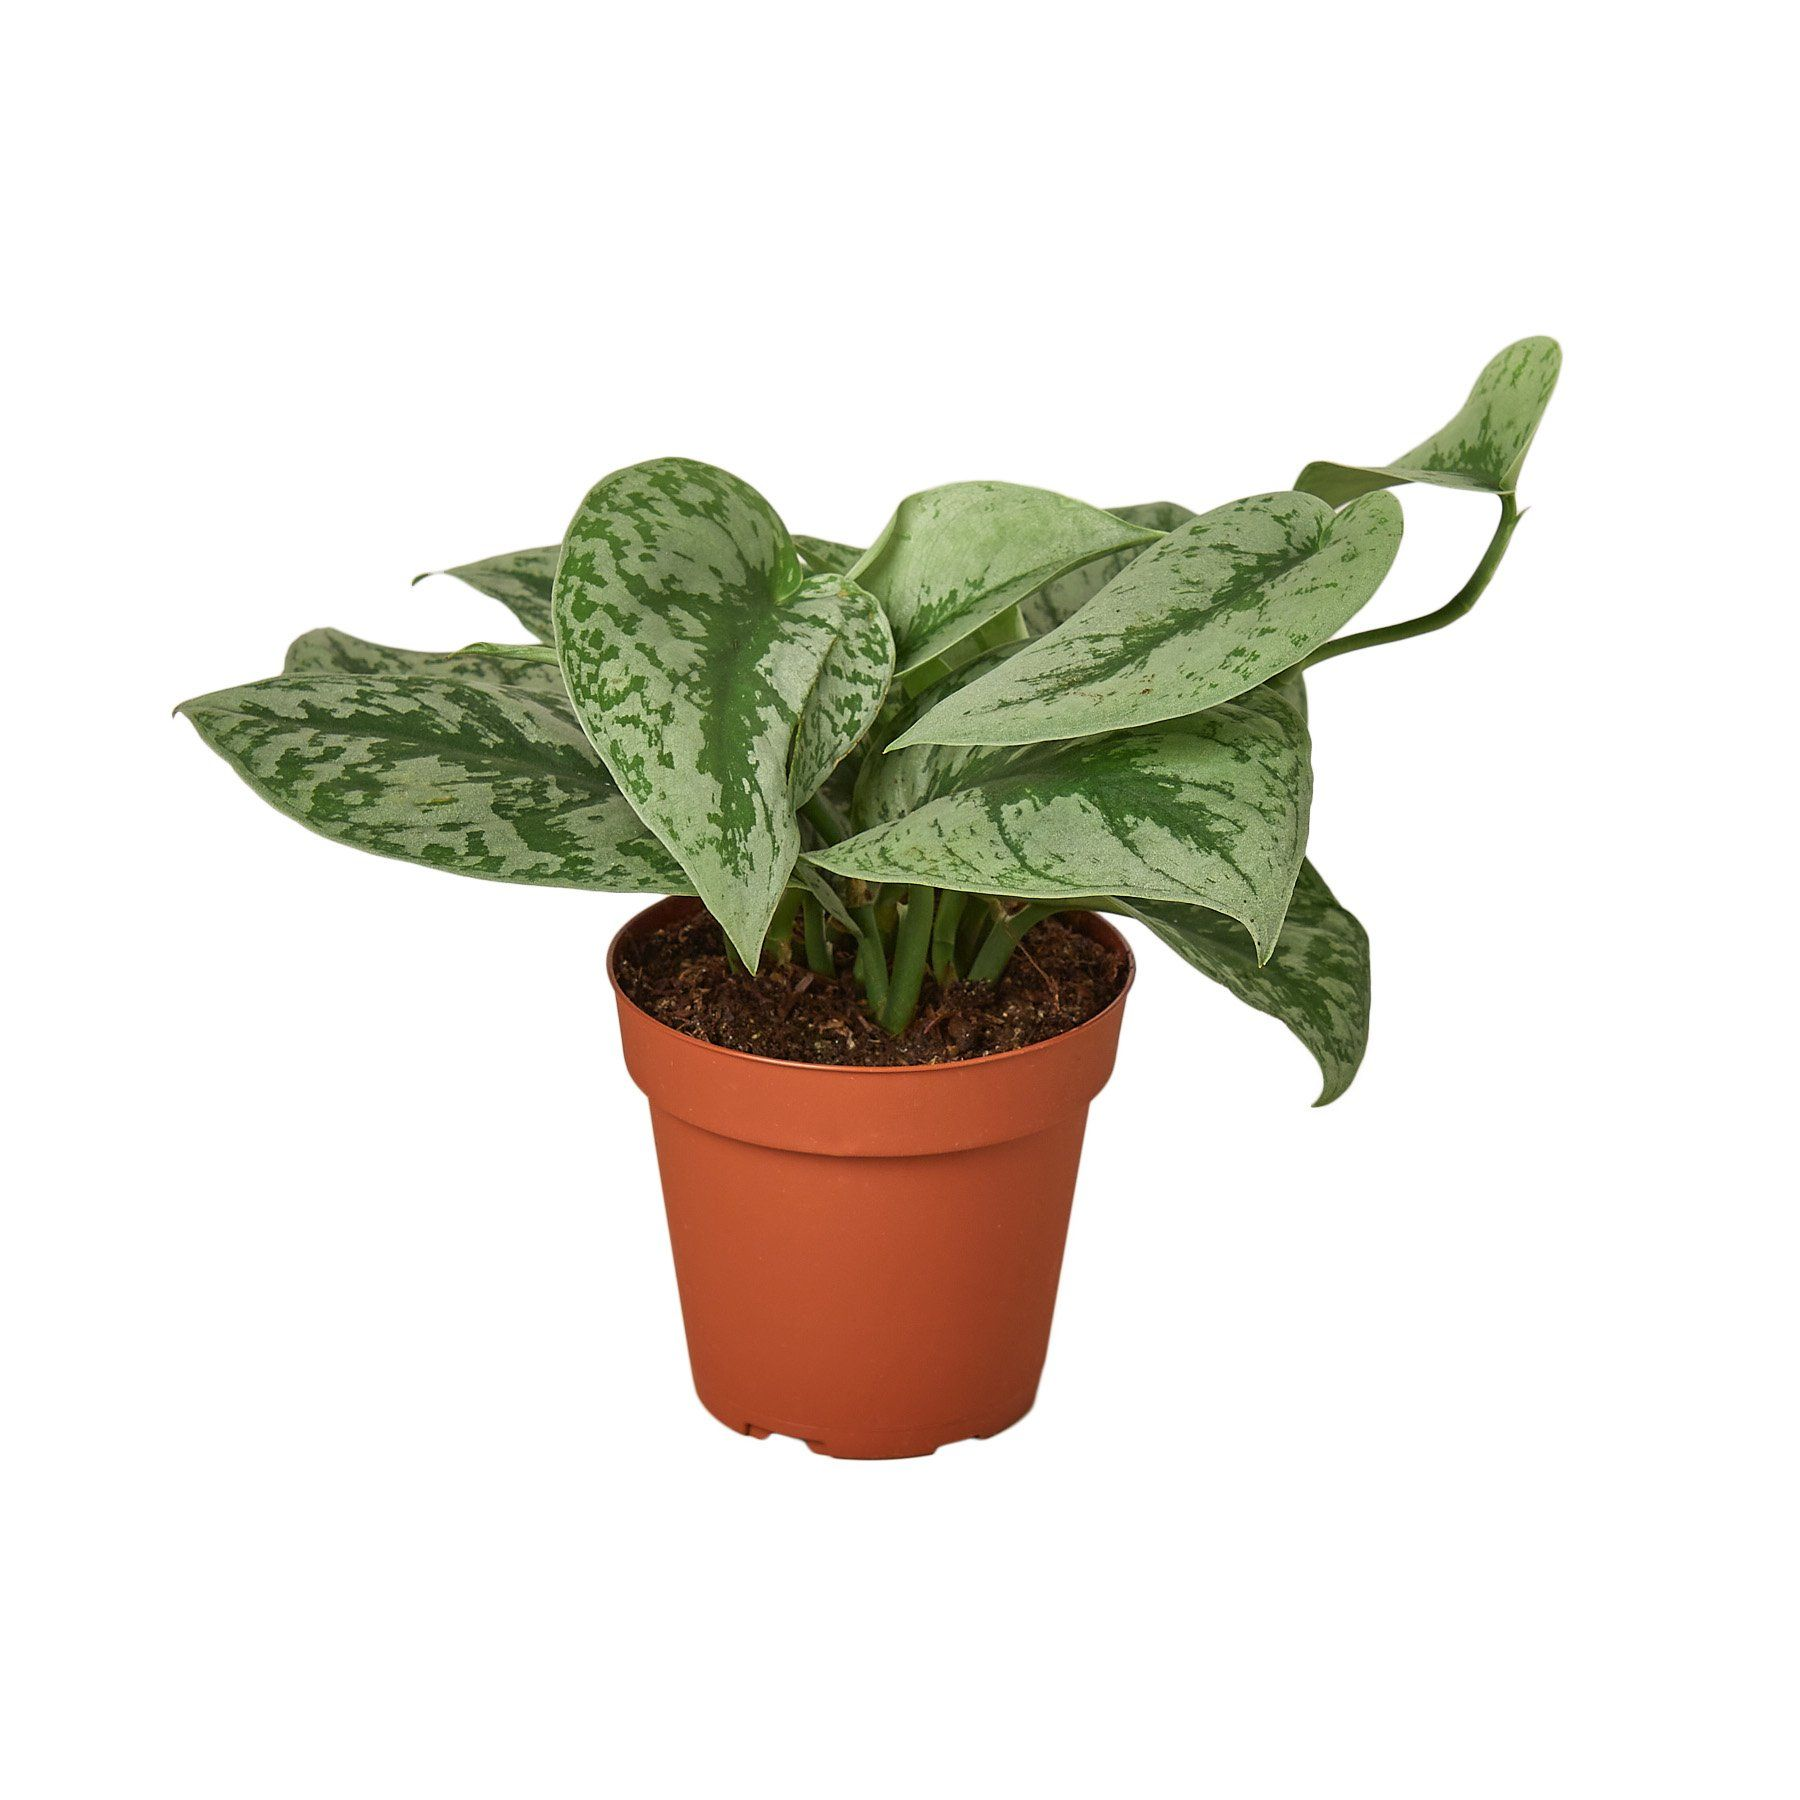 Pothos 'Silver Splash' Houseplant-SproutSouth-Indoor Plants